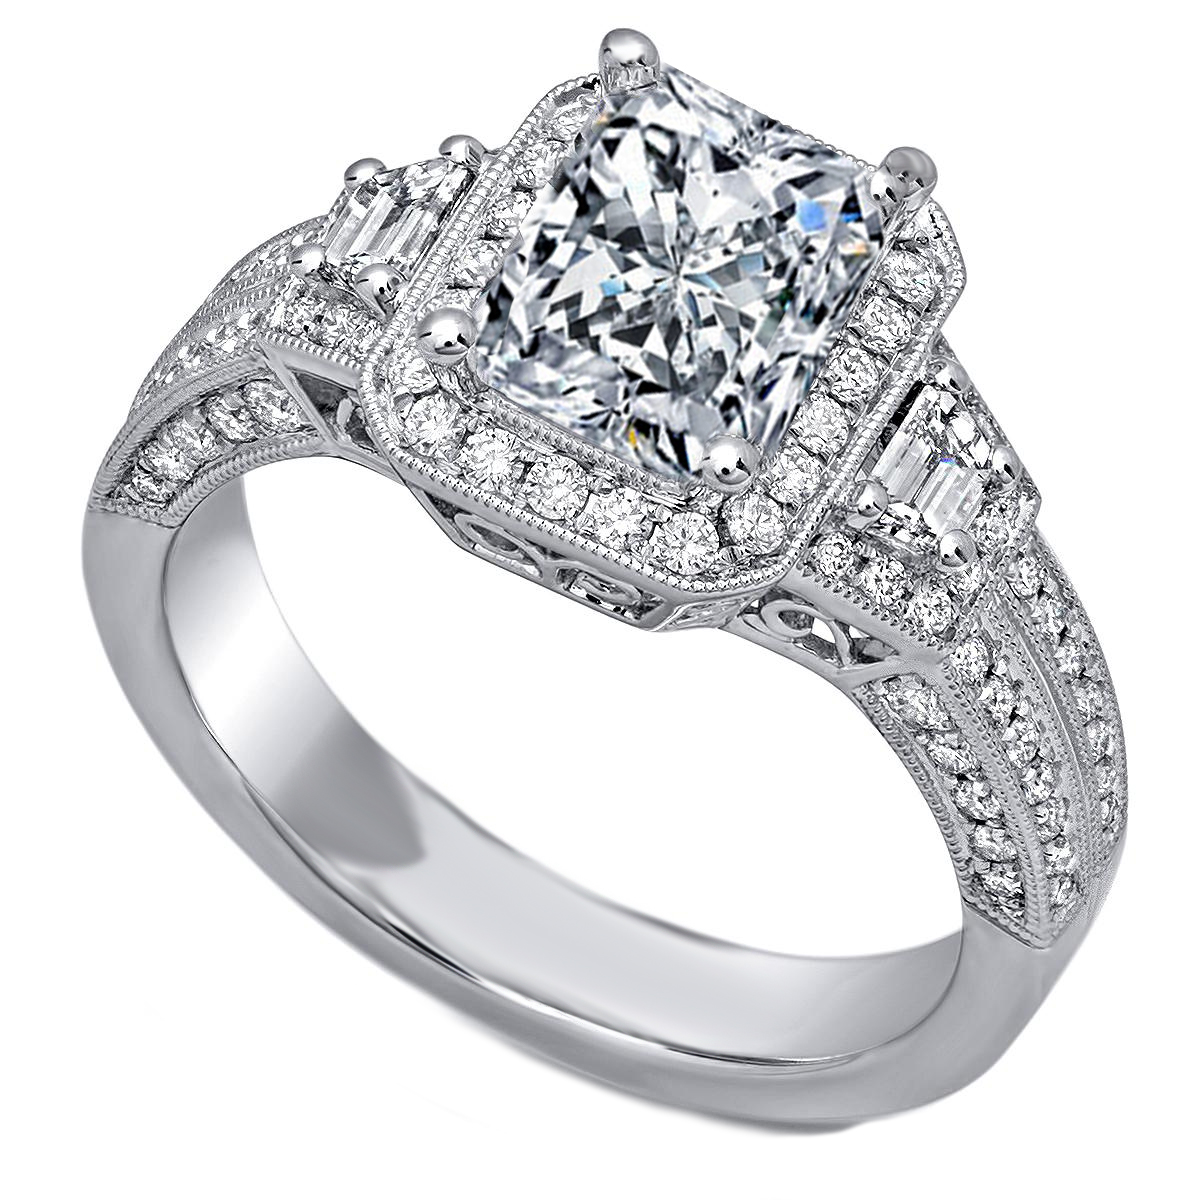 cushion engagement rings from mdc diamonds nyc. Black Bedroom Furniture Sets. Home Design Ideas